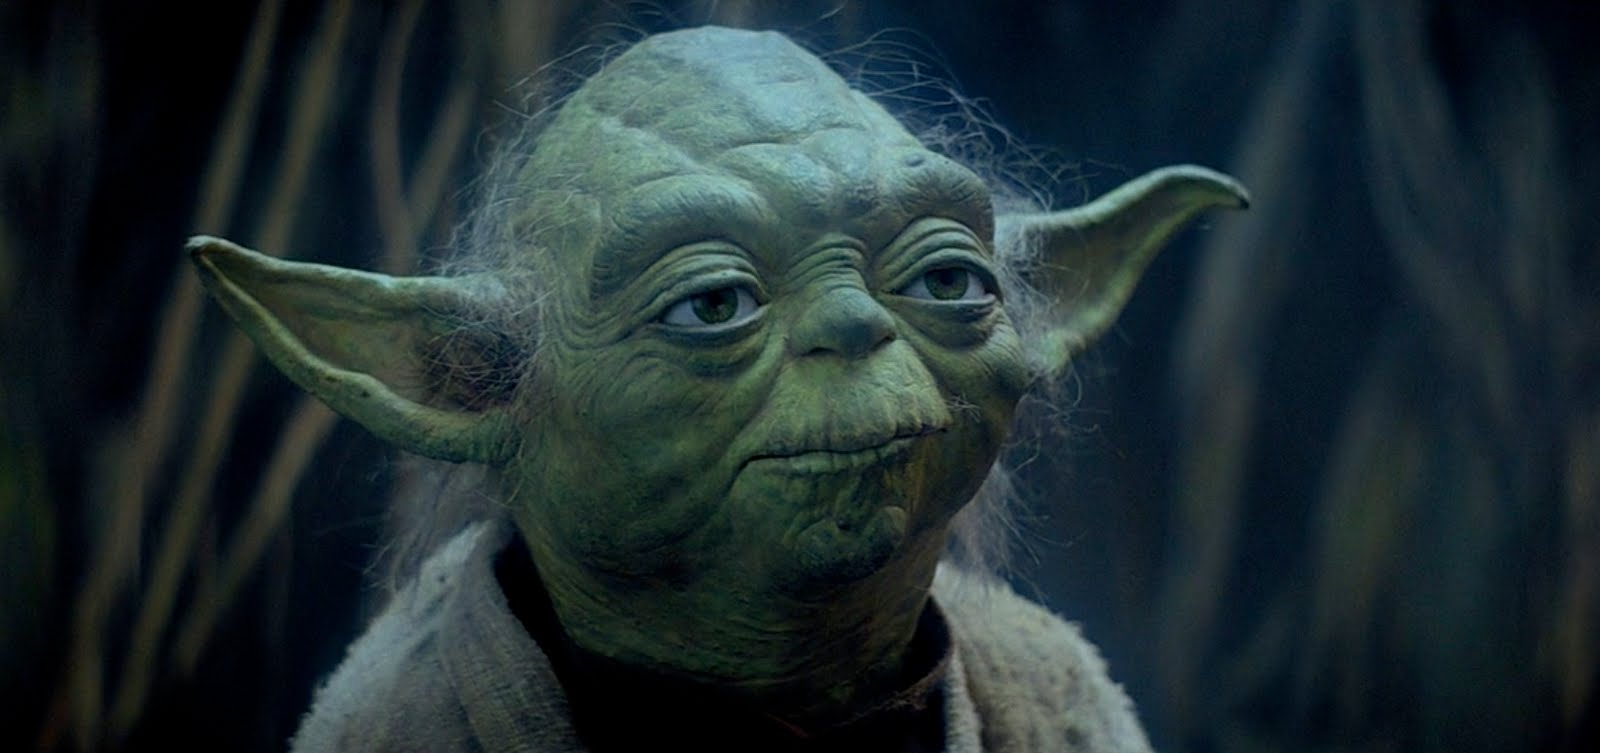 15 More Star Wars Quotes To Use In Everyday Life Starwars